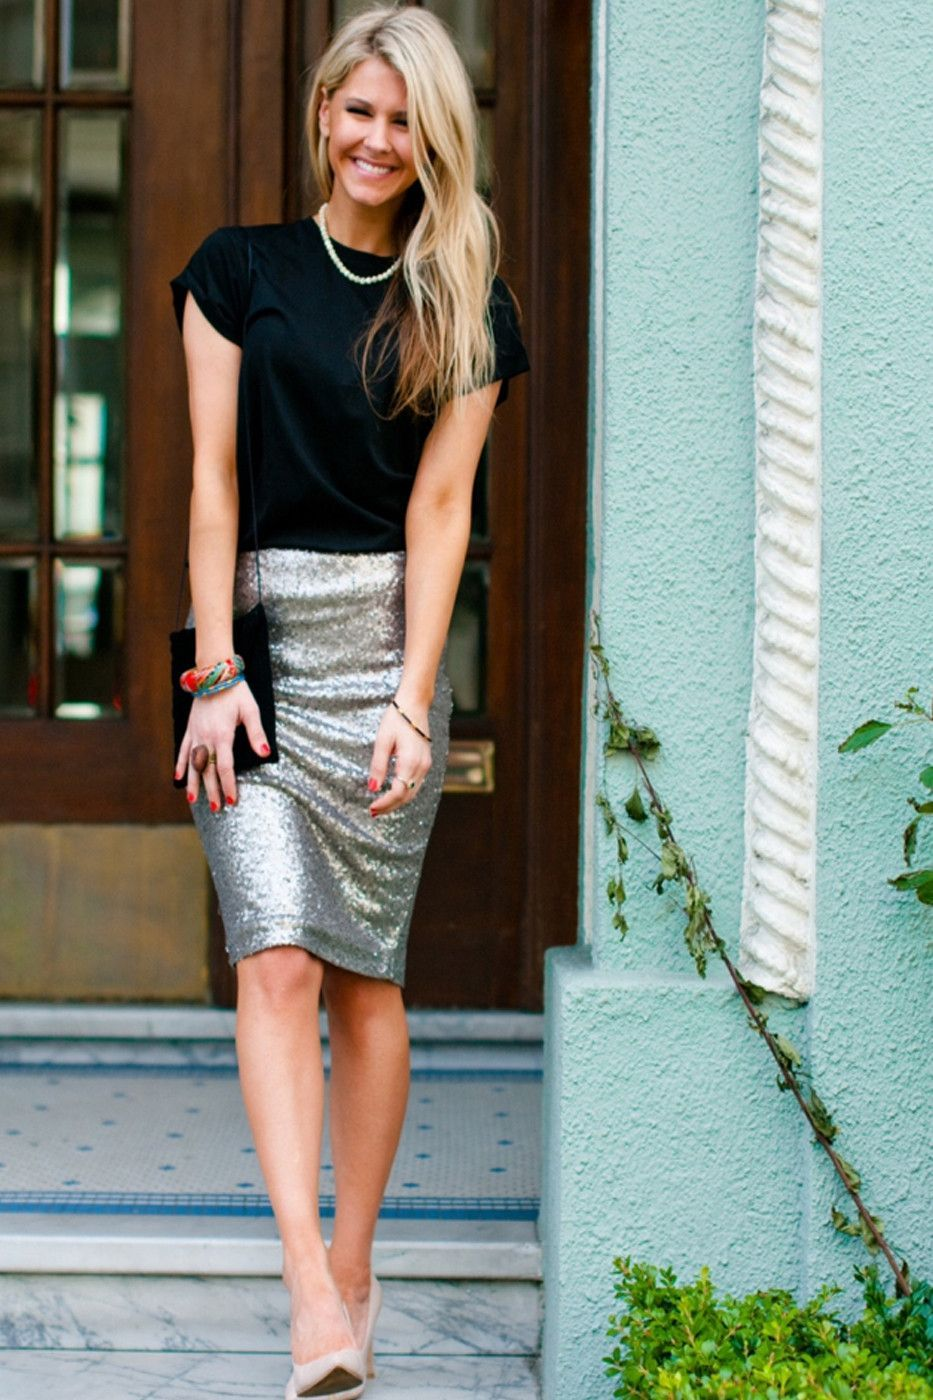 Marilyn Sequin Pencil Skirt | Sequin pencil skirt, Silver sequin and ...